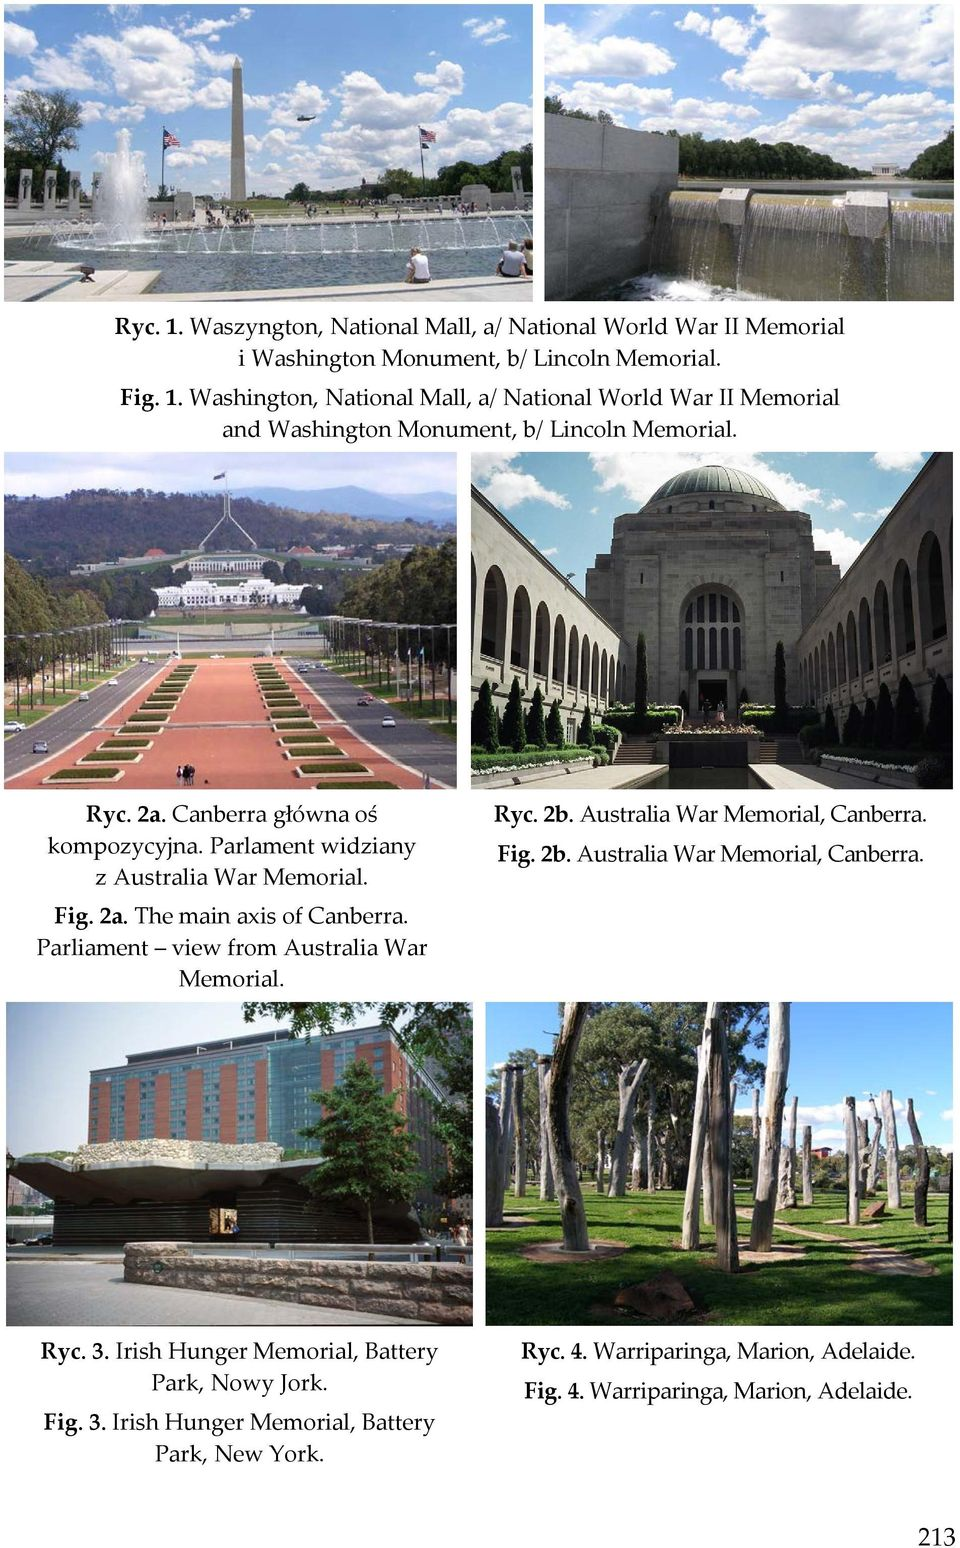 Ryc. 2b. Australia War Memorial, Canberra. Fig. 2b. Australia War Memorial, Canberra. Ryc. 3. Irish Hunger Memorial, Battery Park, Nowy Jork. Fig. 3. Irish Hunger Memorial, Battery Park, New York.